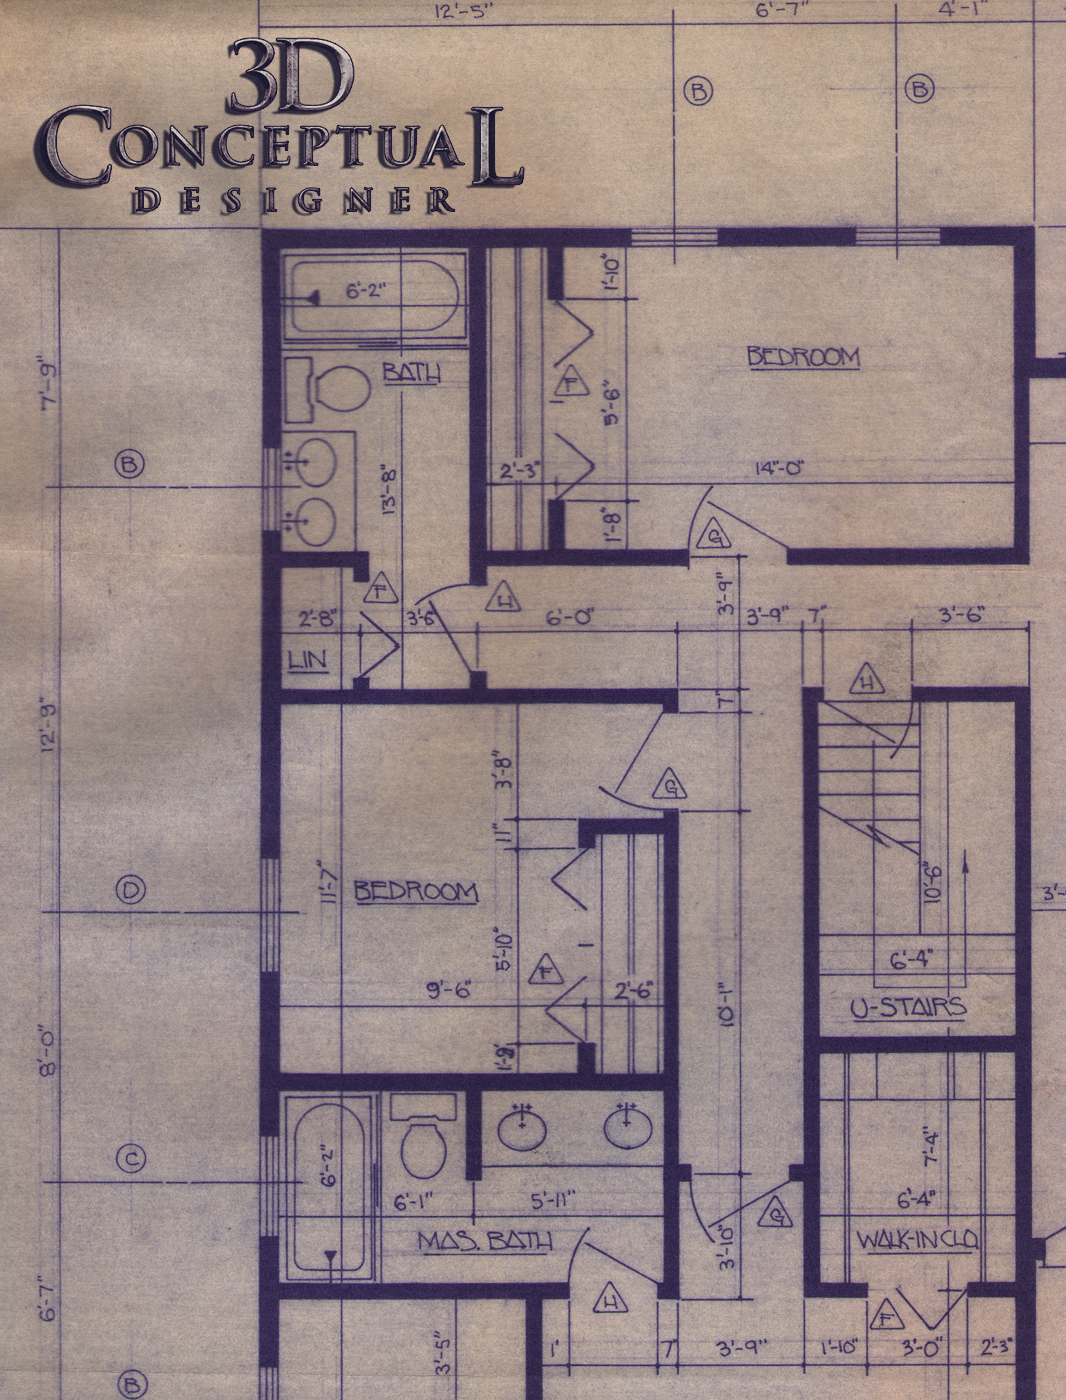 ... School Architecture Class. You Will Note The Studio Off The Master  Bedroom, As Well As A Wood Shop Area Off The Garage, Which Are Still To  This Day A ...